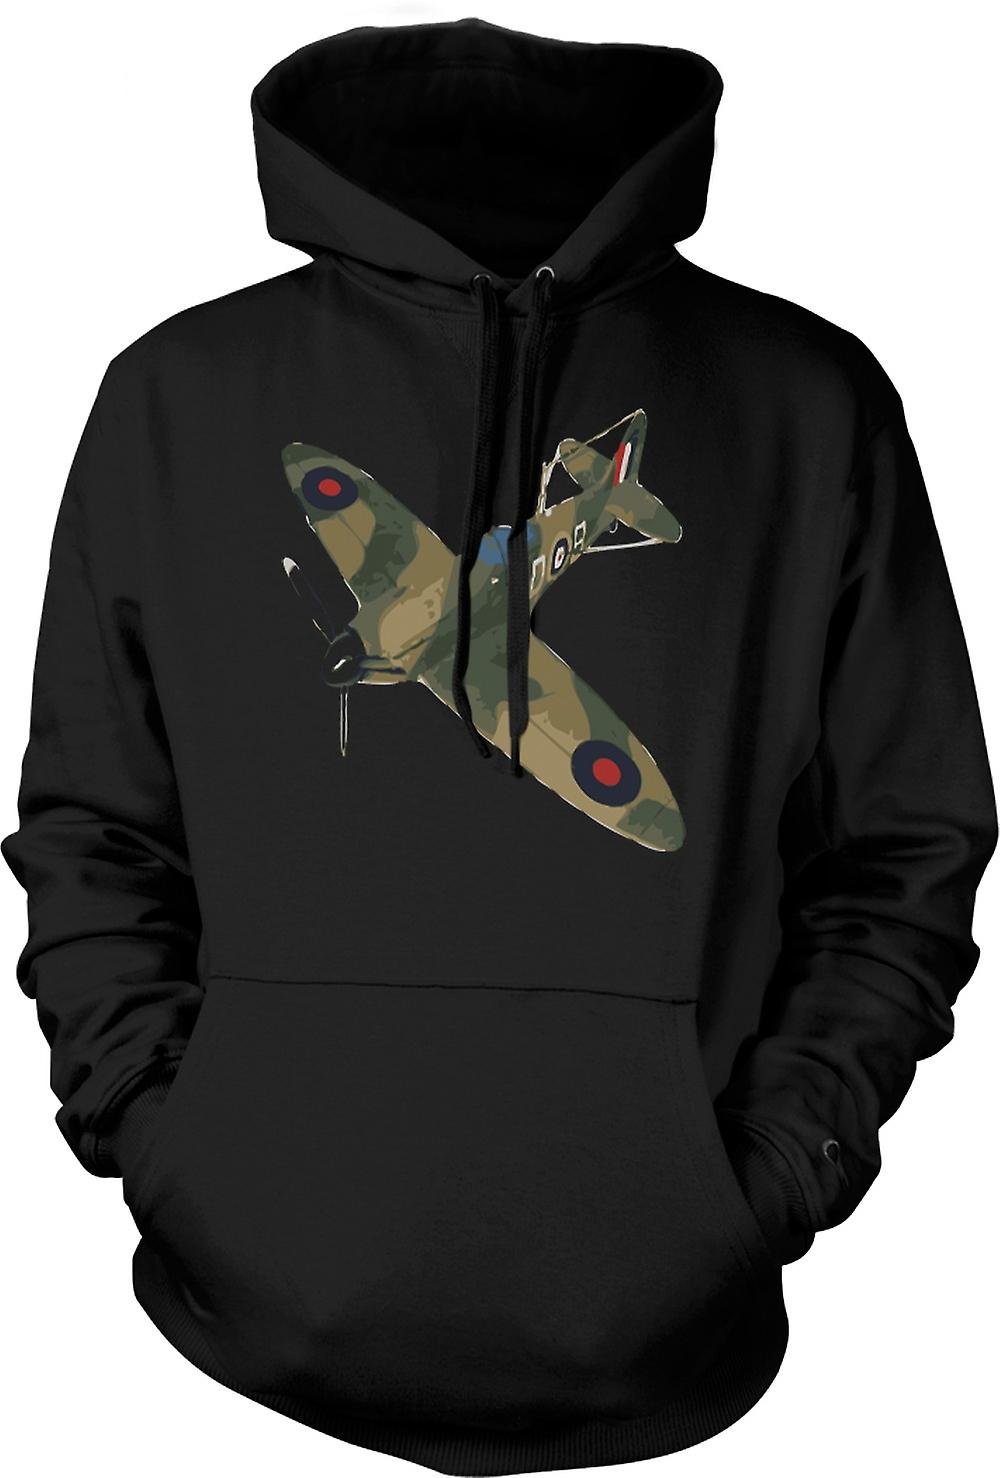 Mens Hoodie - Spitfire Green Cam Pop Art - Quote